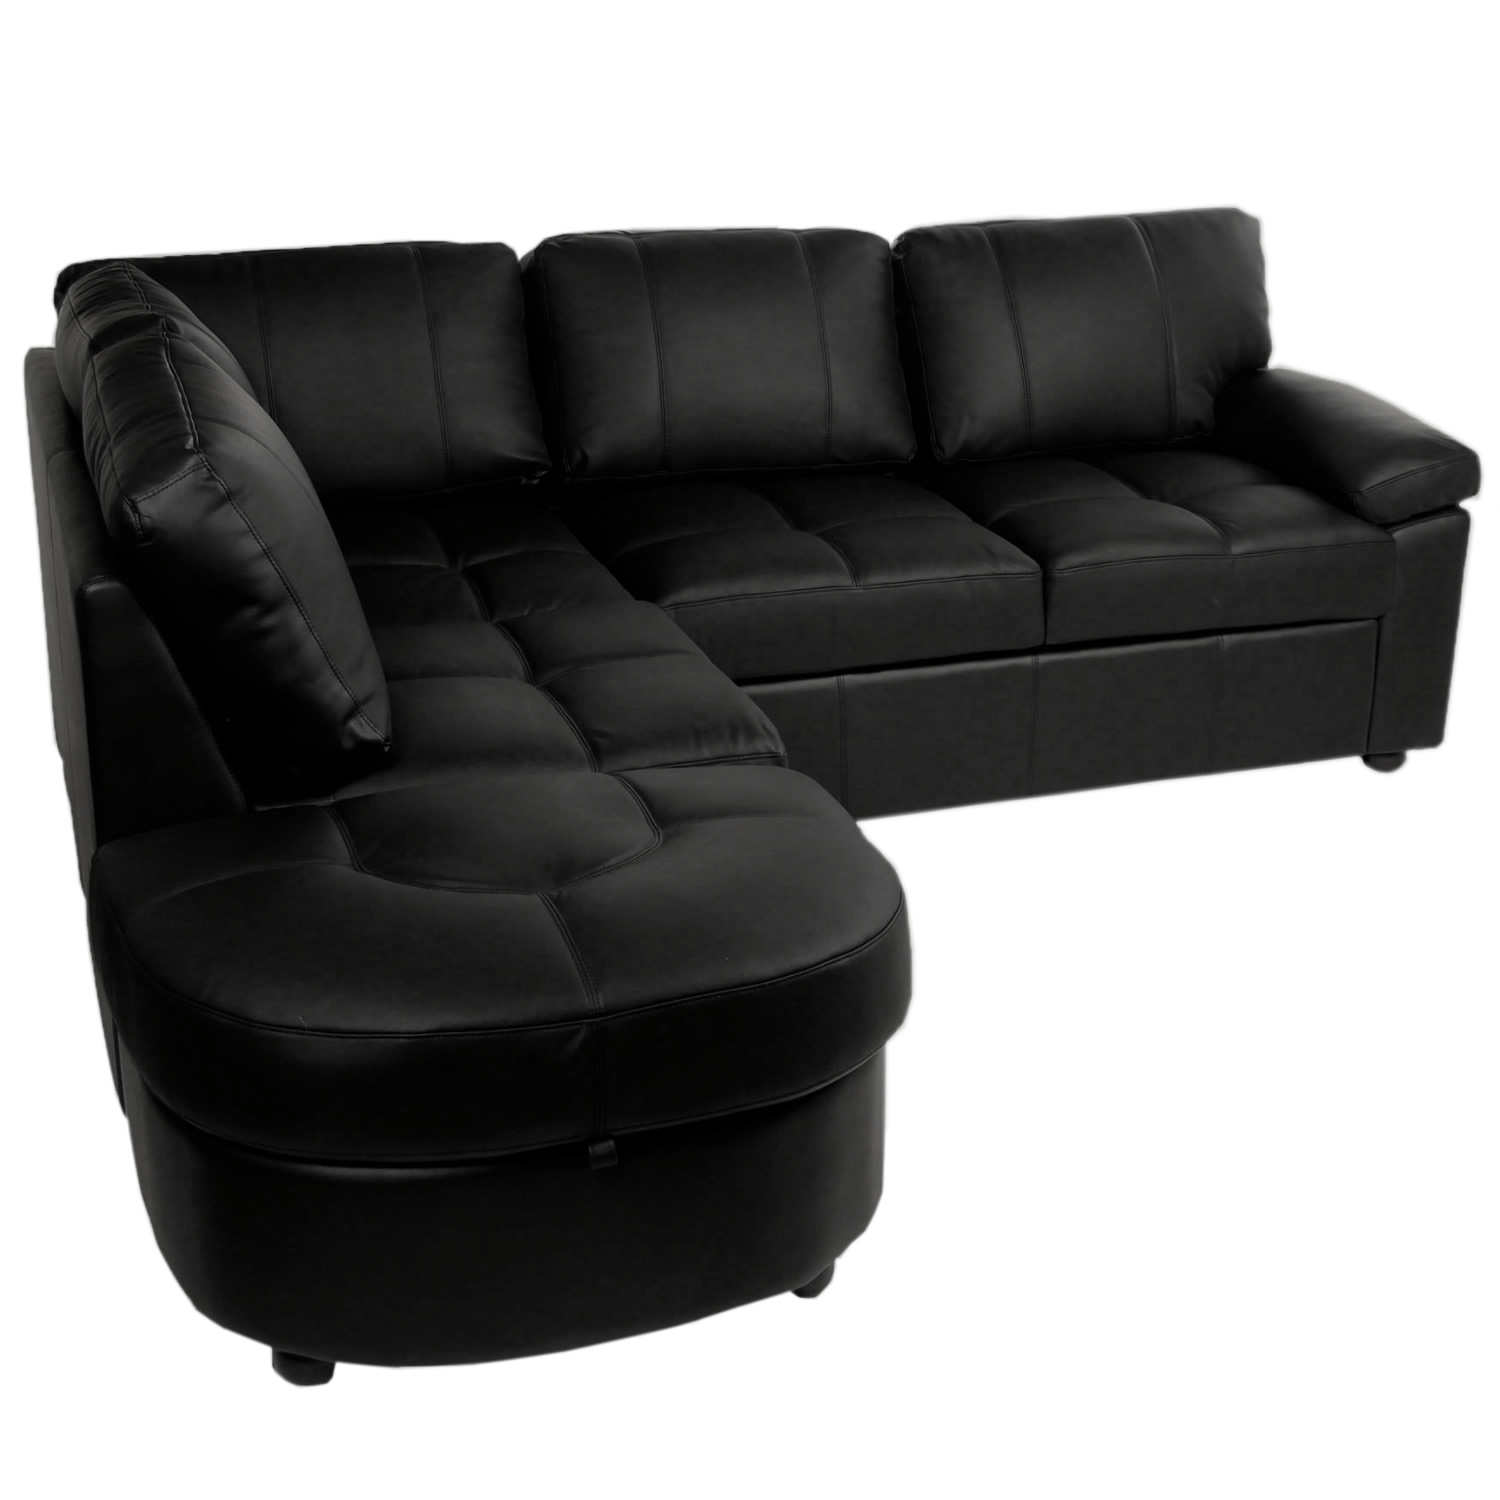 Popular ... Fancy Real Leather Corner Sofa Bed With Storage 51 For Velvet Air leather corner sofa bed with storage